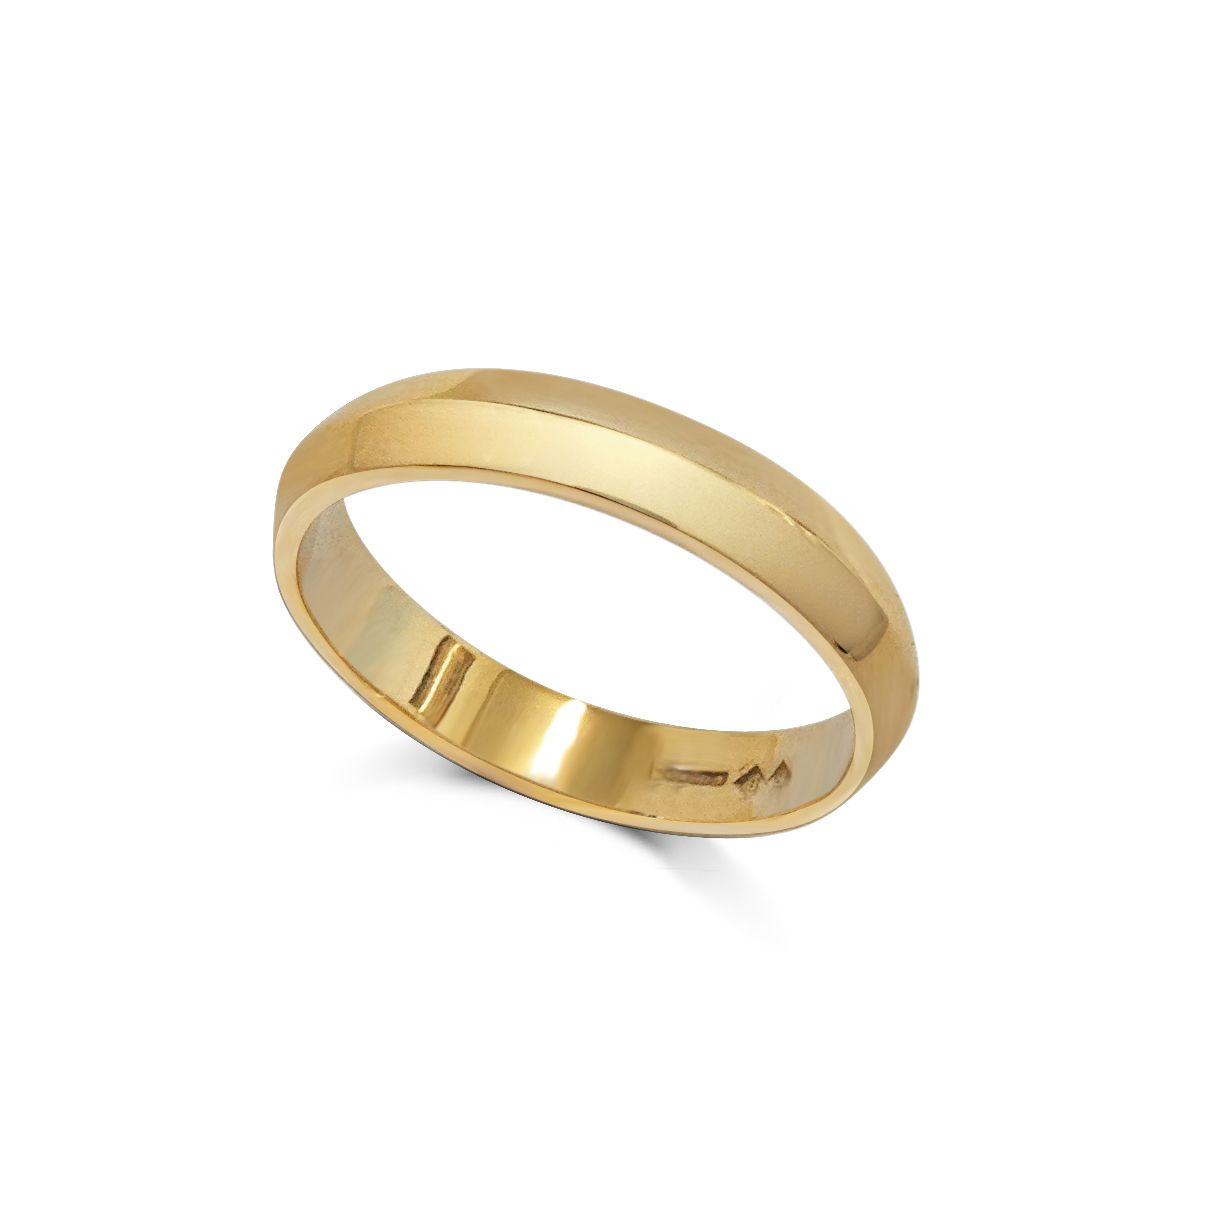 Knife Edge 18ct Yellow Gold Wedding Band Men S Wedding Band Alternative Wedding Knife Edge Wedding Band Mens Gold Wedding Band Mens Yellow Gold Wedding Bands